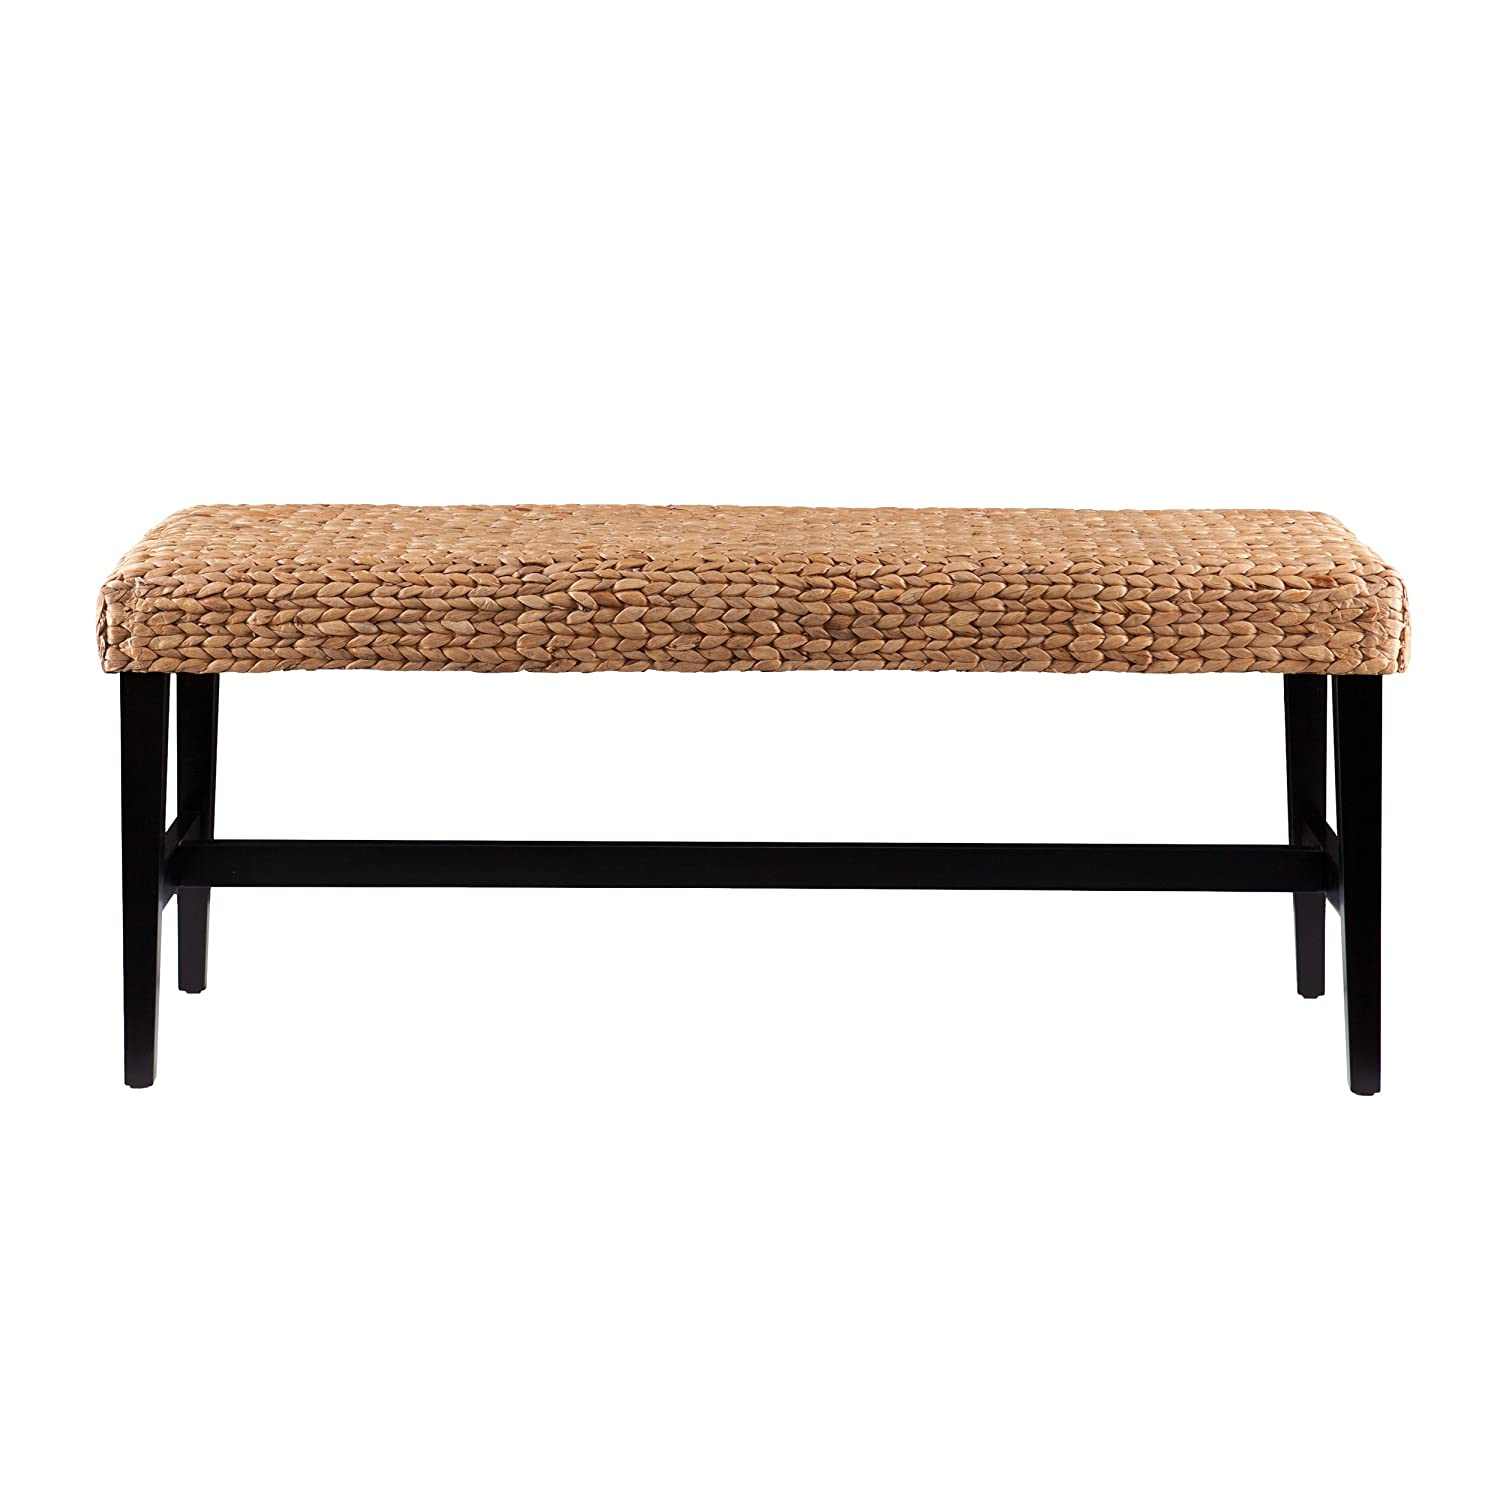 Southern Enterprises Water Hyacinth Bench, Black and Natural Finish AMZ6520